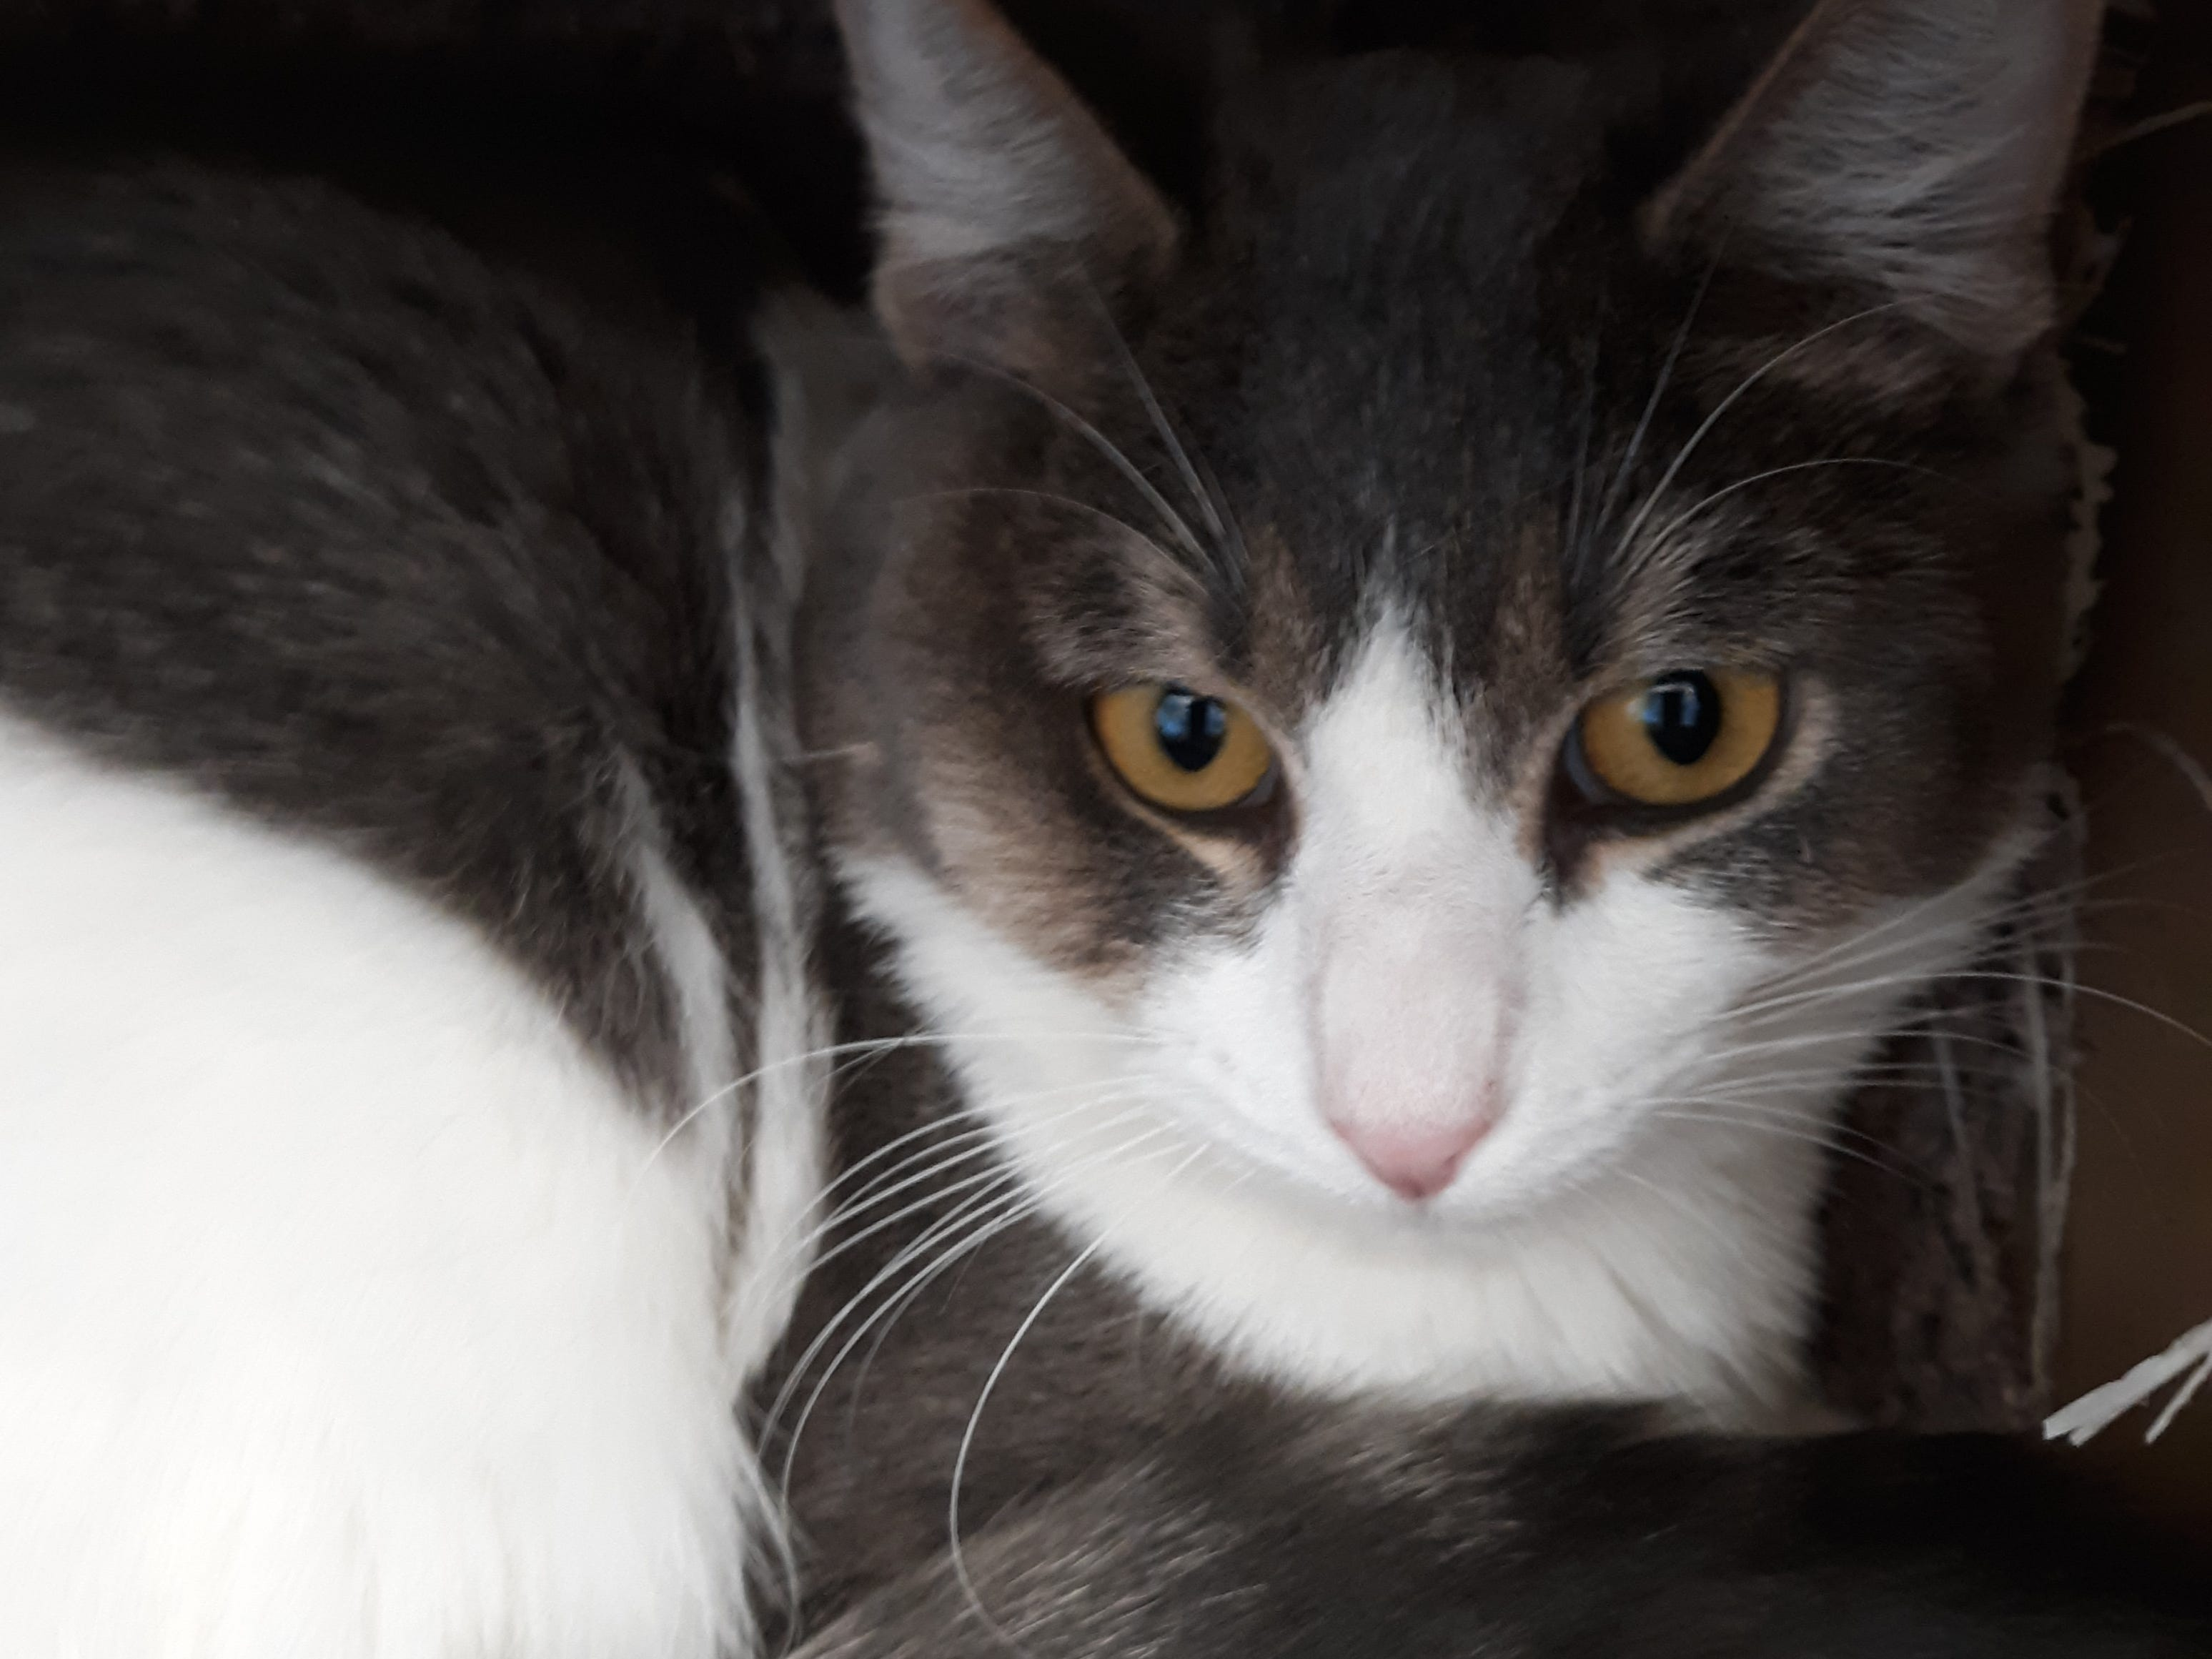 Harmony is a 10-month-old, female, gray and white polydactyl kitten with a very sweet friendly personality. All animal adoptions include spaying or neutering and vaccinations. Apply with Another Chance Animal Welfare League at www.acawl.org. Call 356-0698.